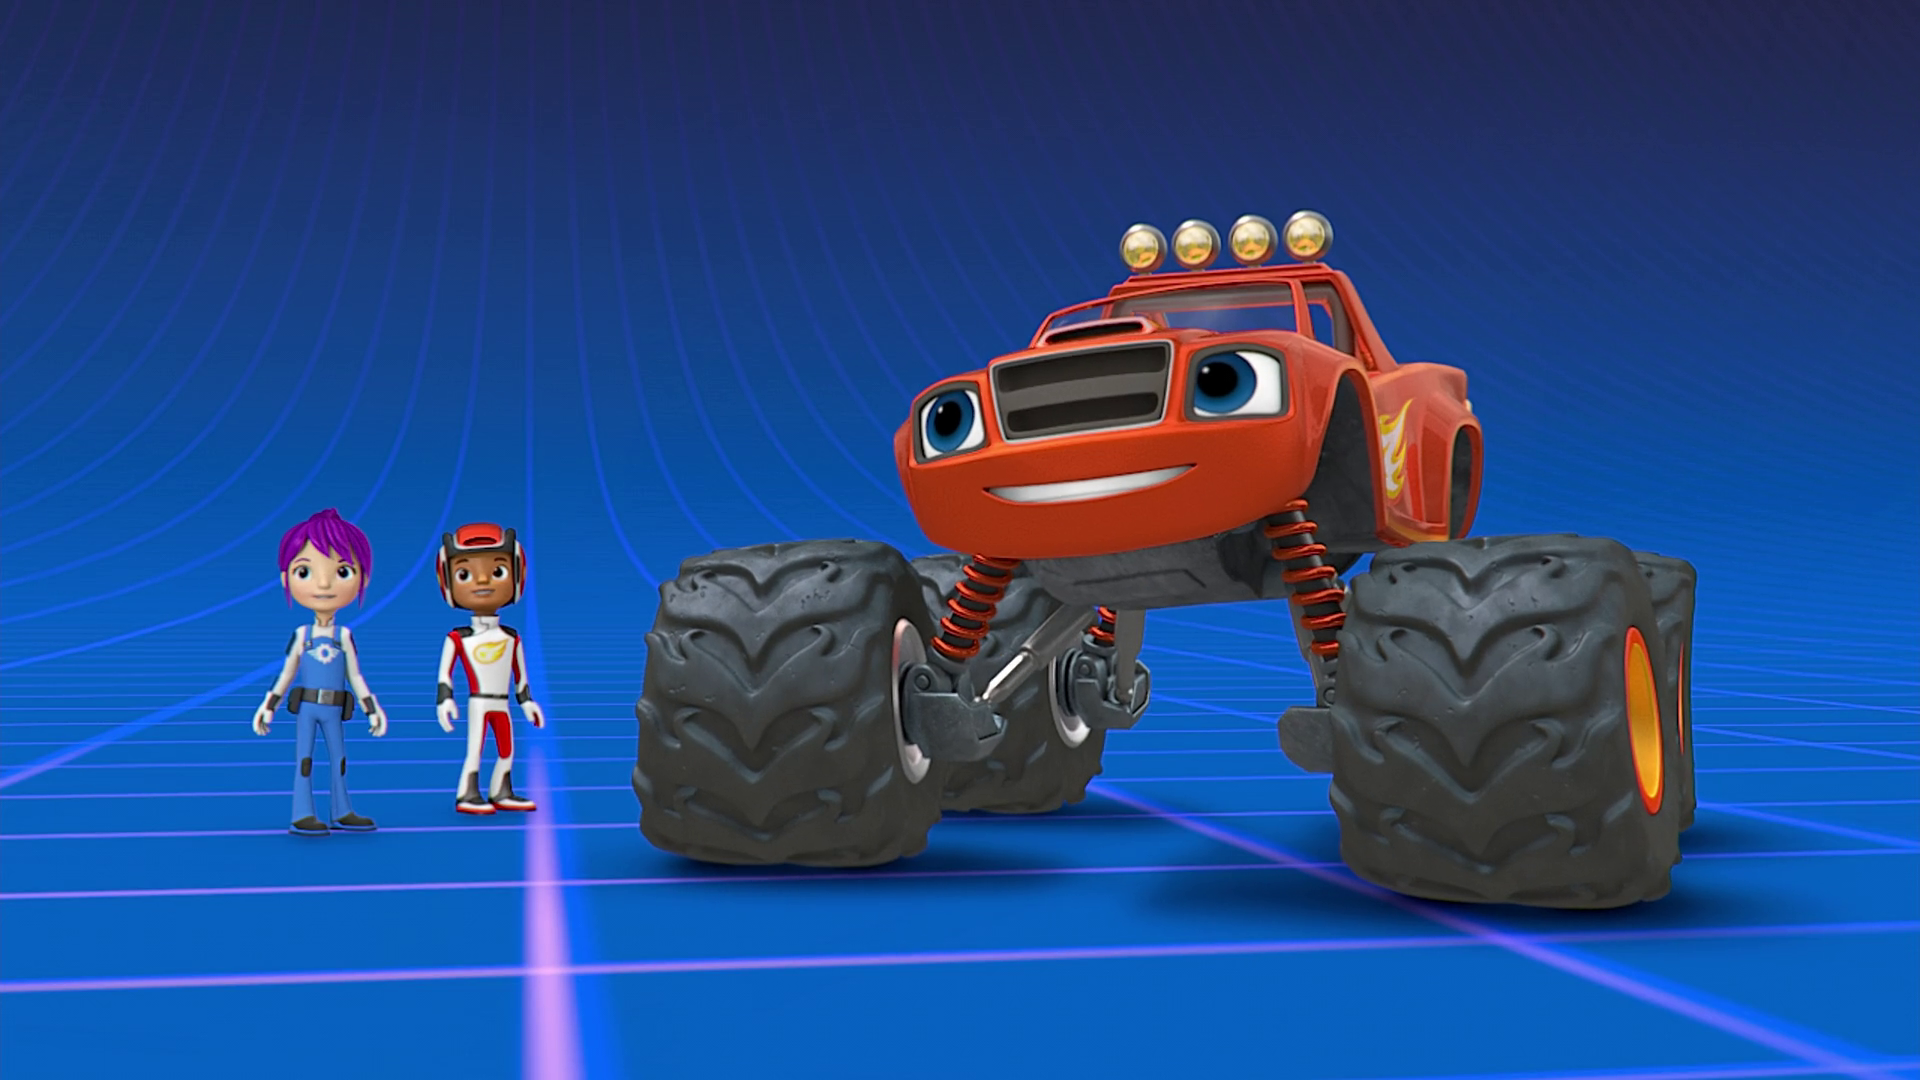 Robot Power Gallery Blaze And The Monster Machines Wiki Fandom Powered By Wikia